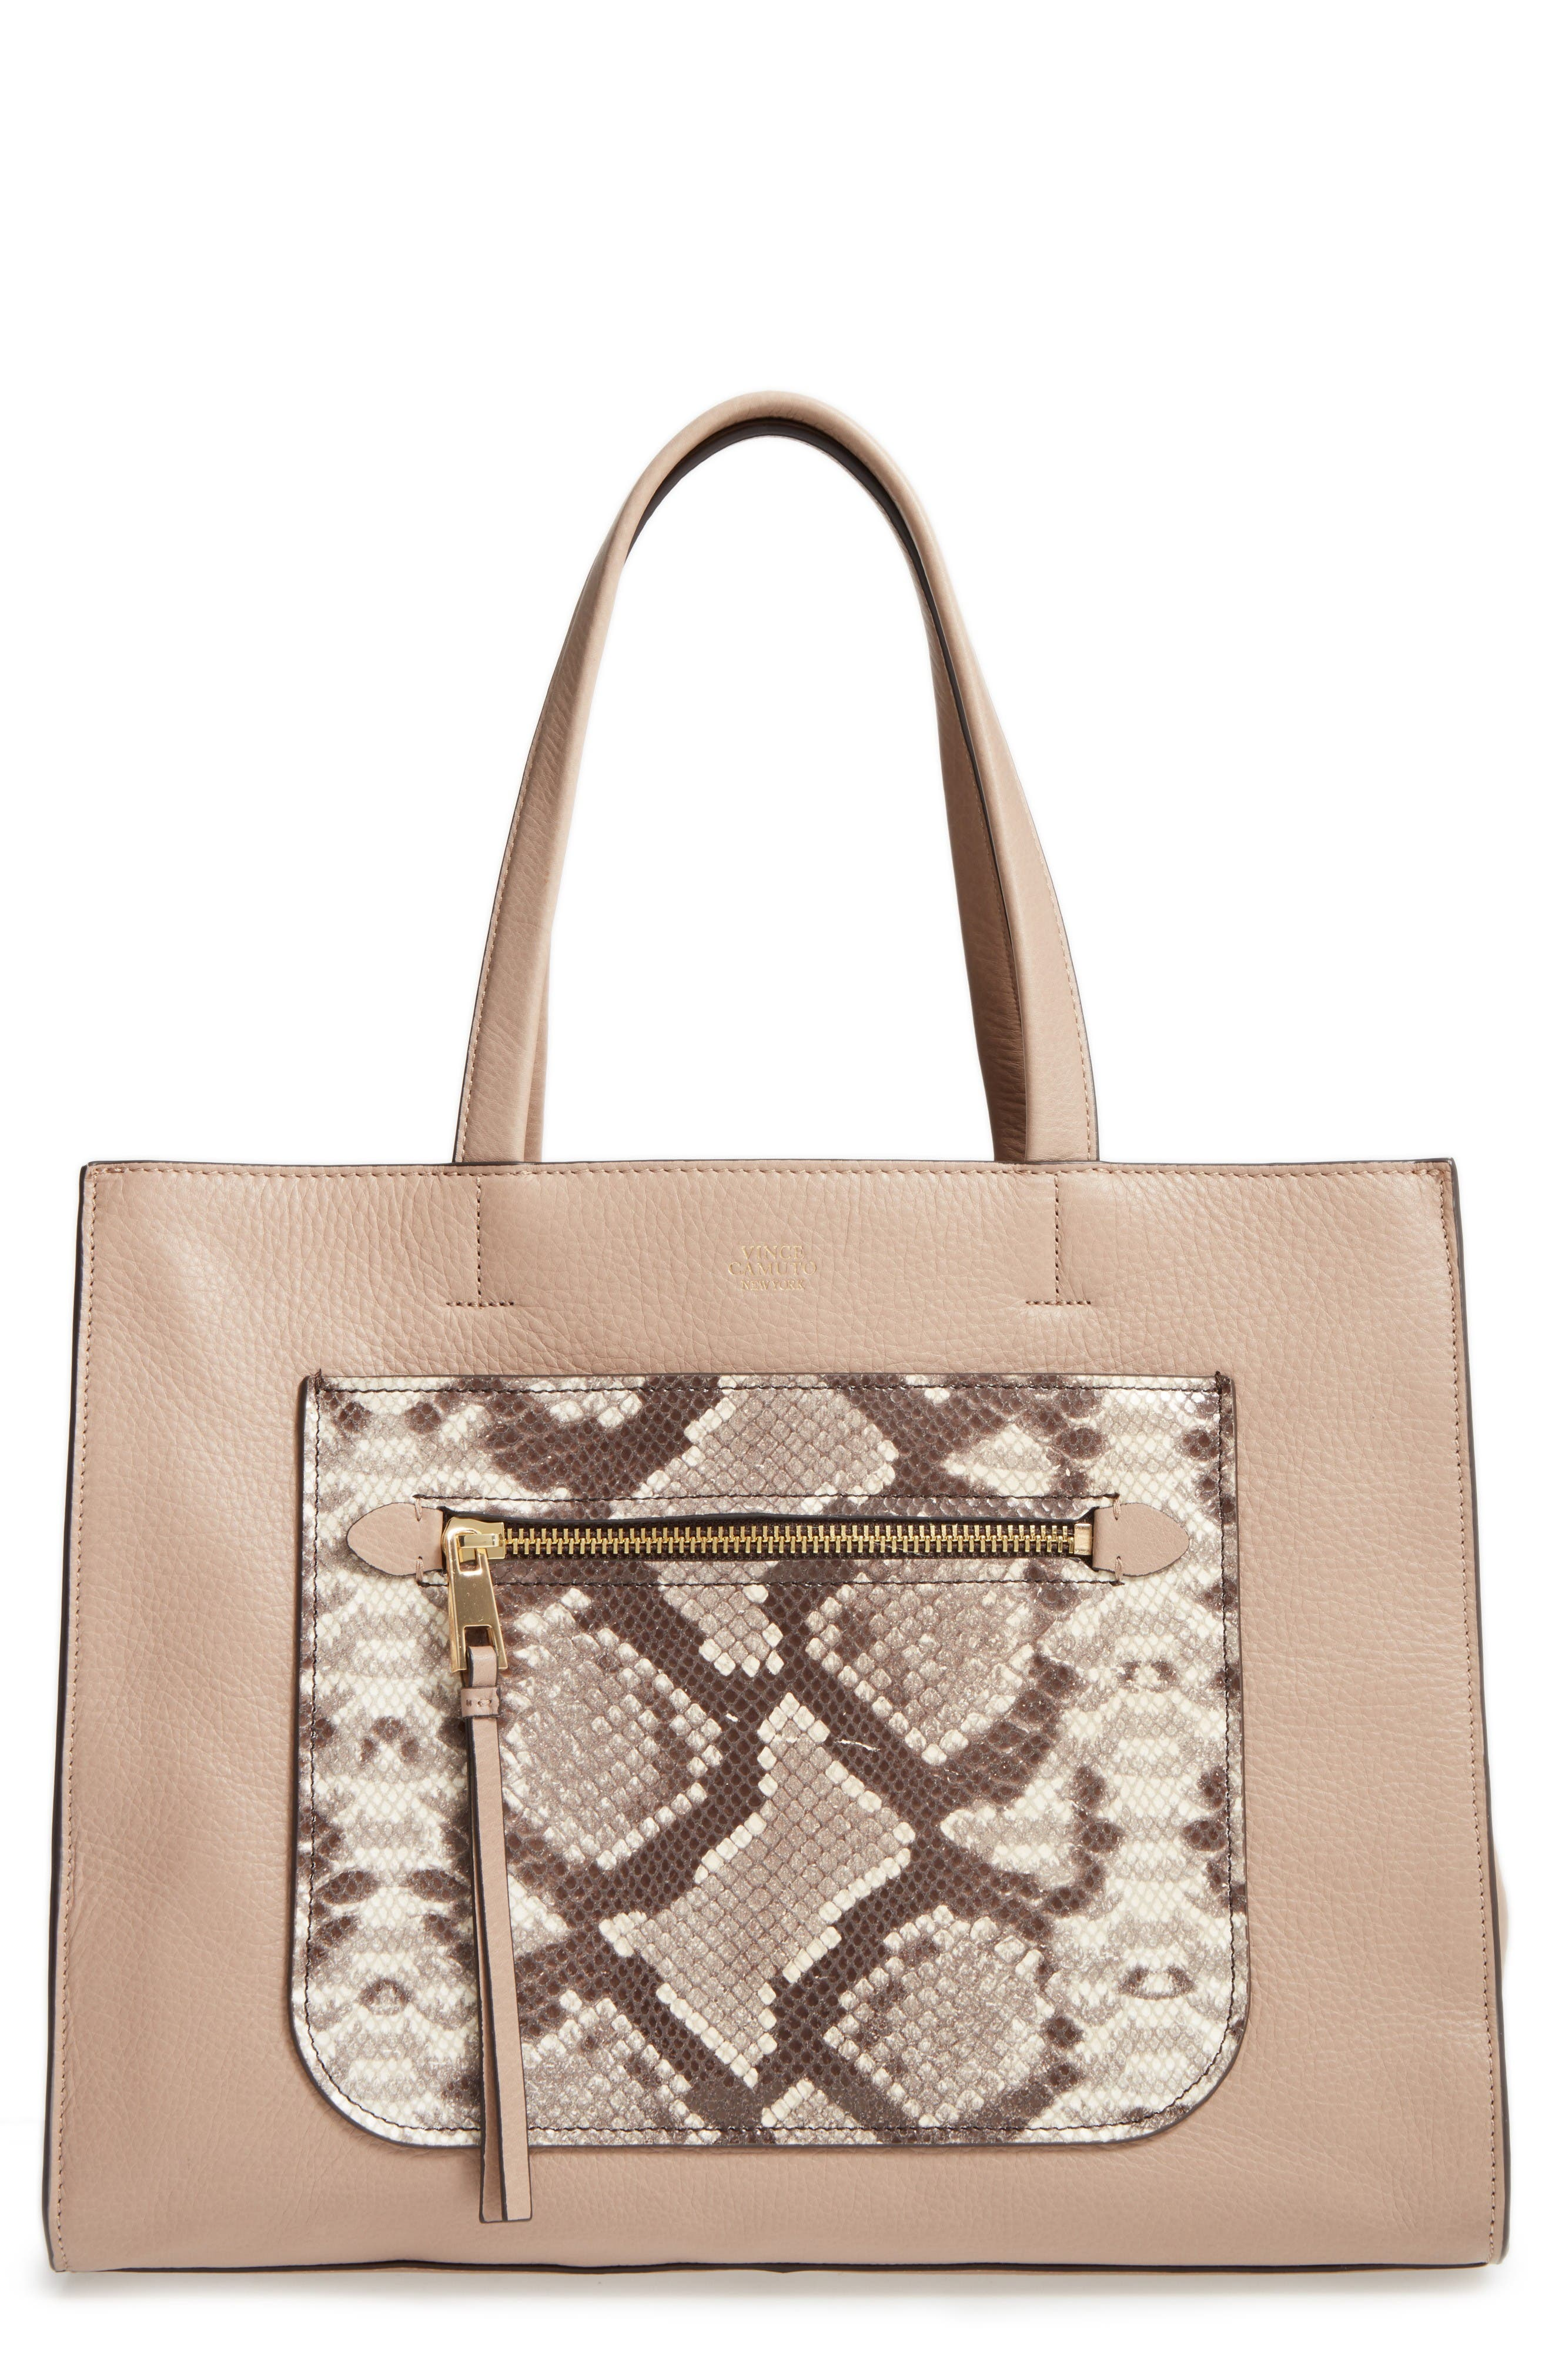 Main Image - Vince Camuto Elvan Leather Tote